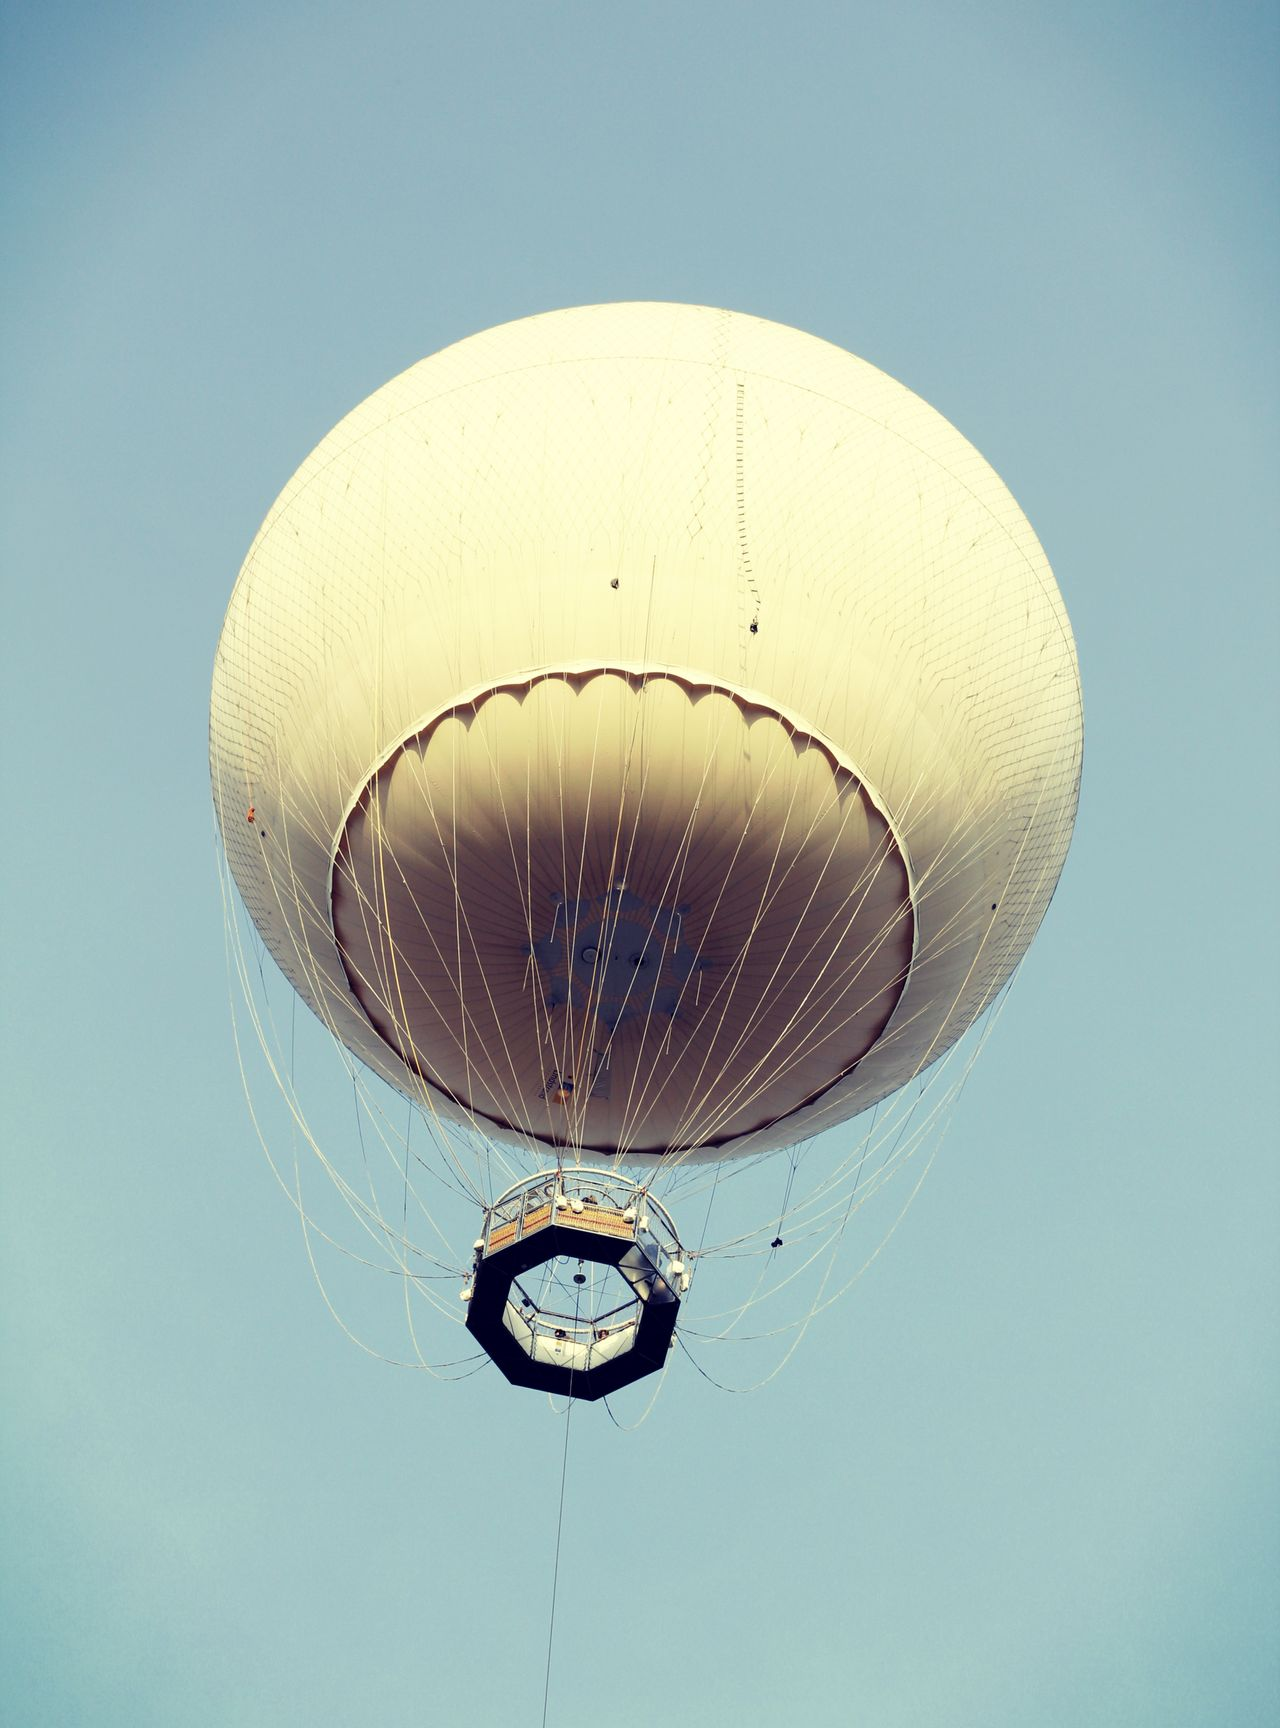 Clear Sky Day Flying Hot-air Balloon Low Angle View Mongolfière Outdoors Sky EyeEmNewHere